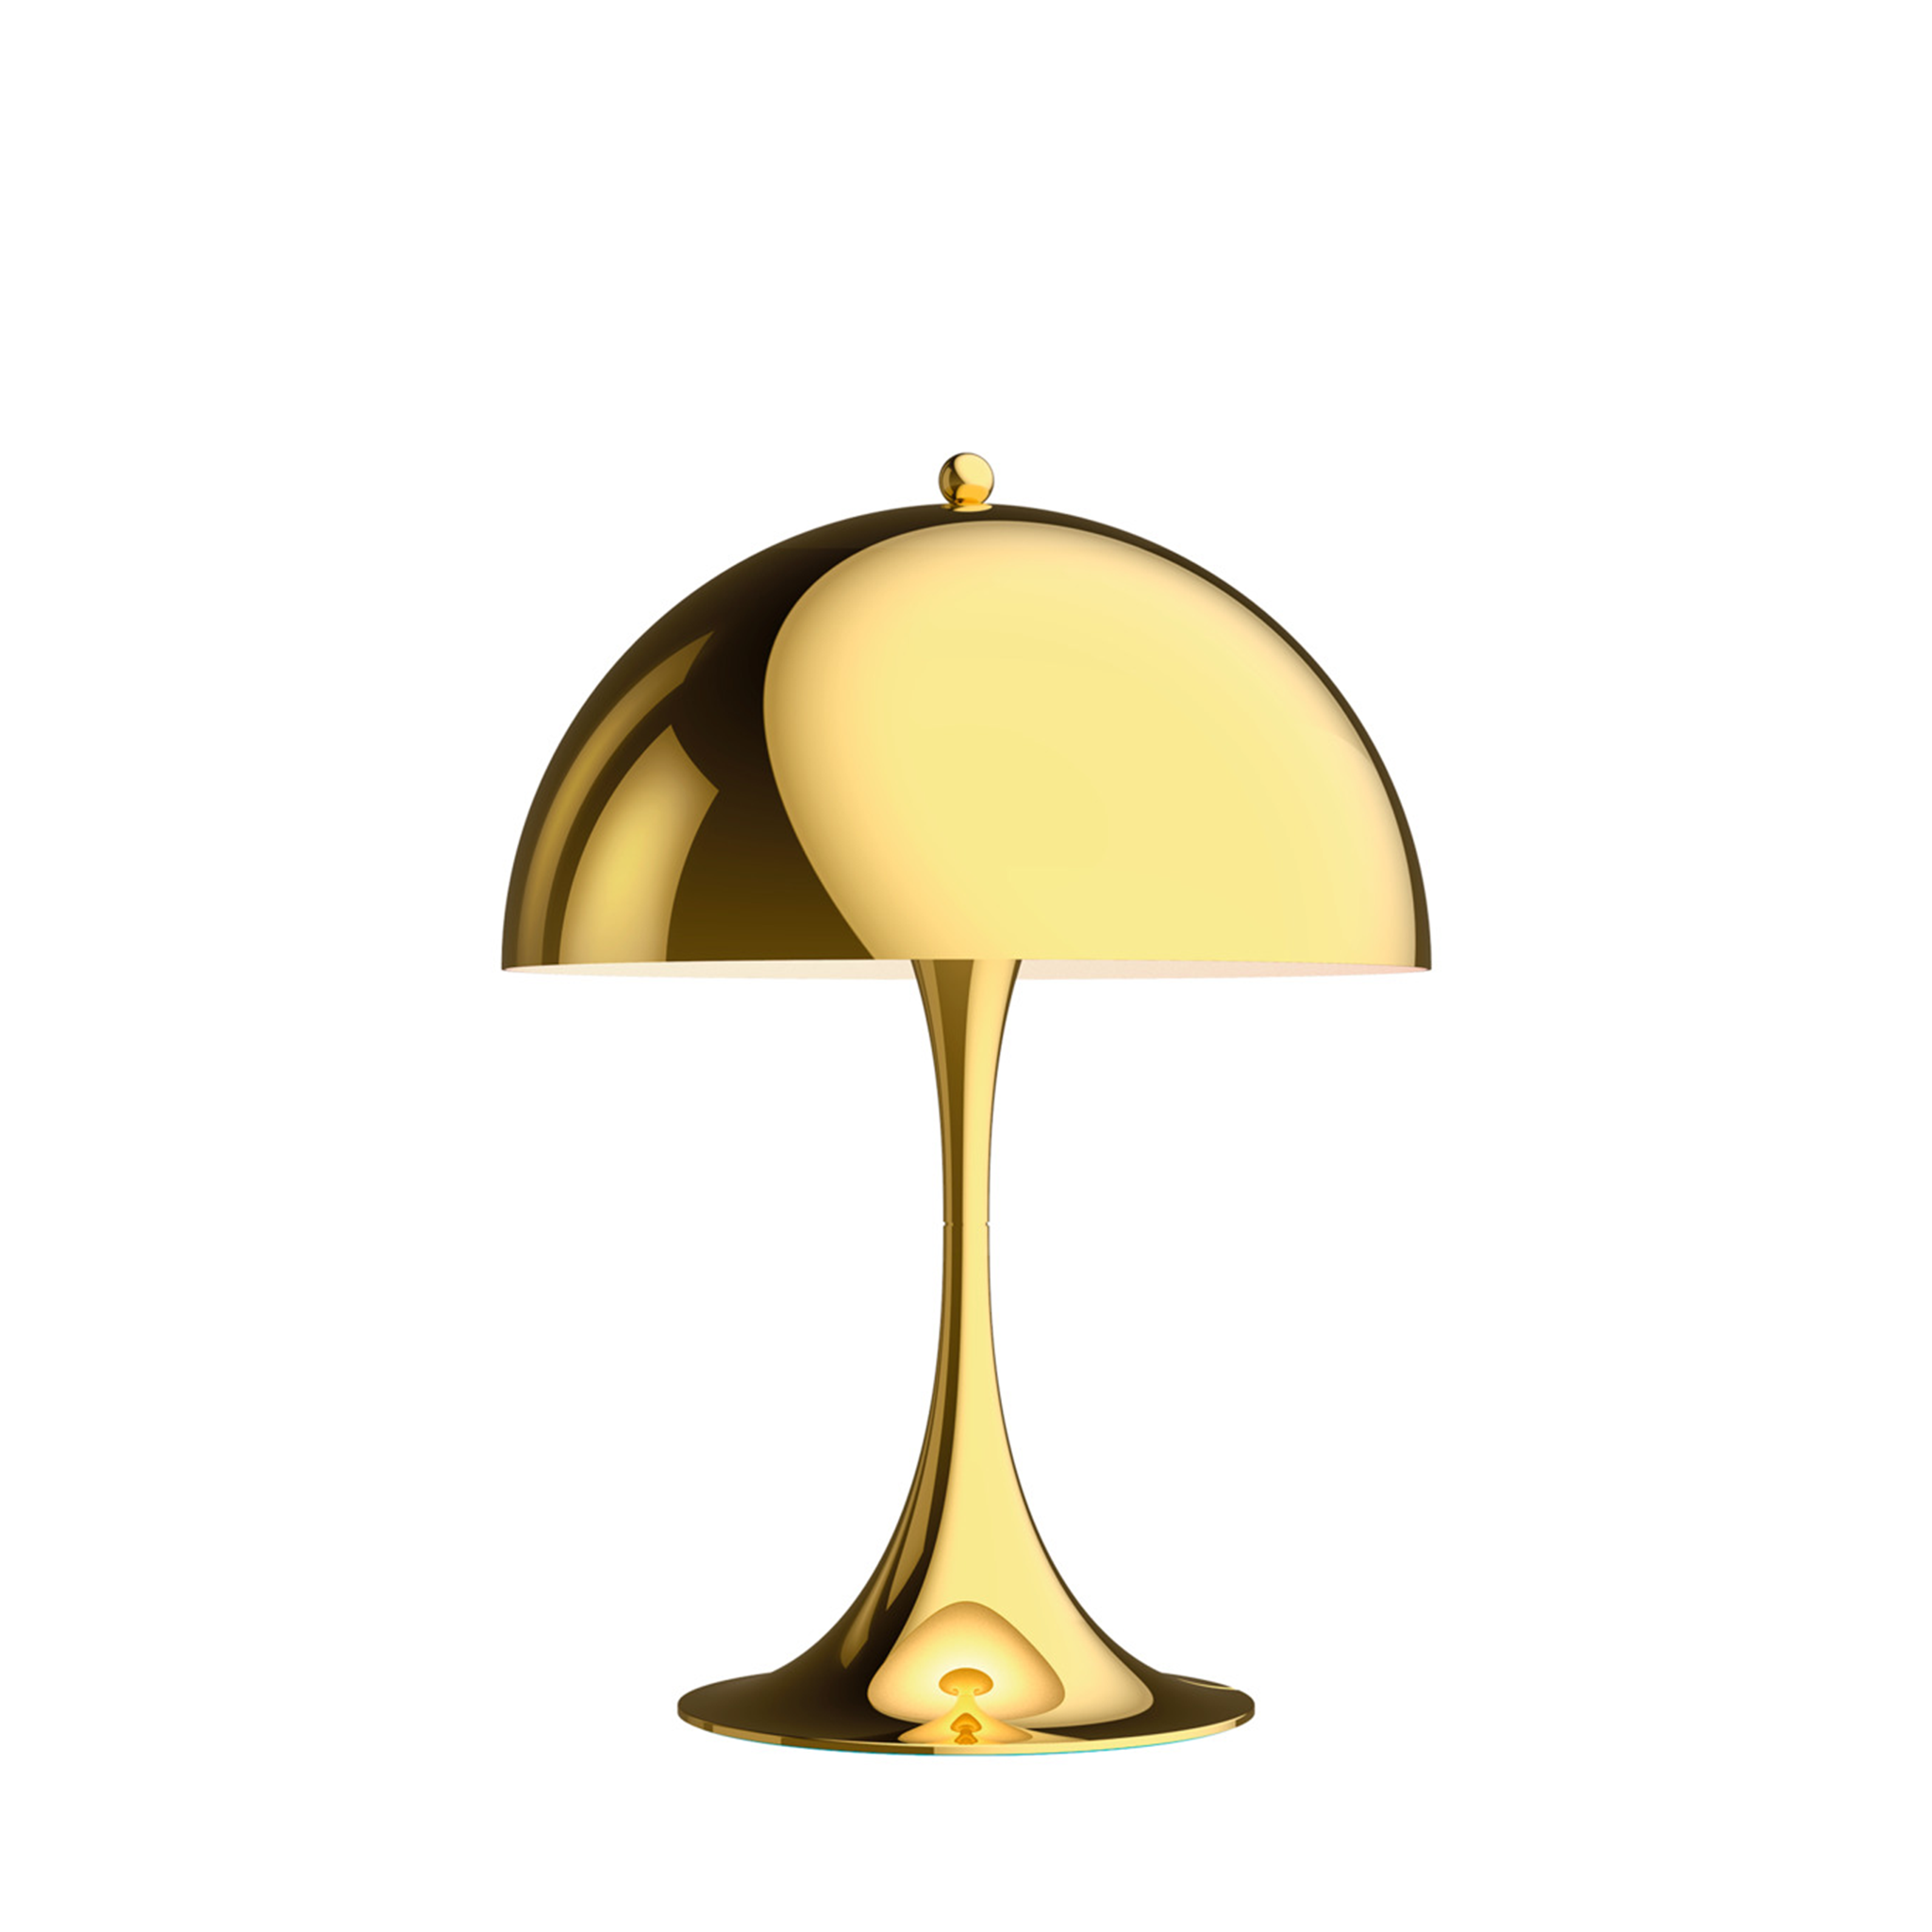 Panthella MINI Table Lamp by Louis Poulsen